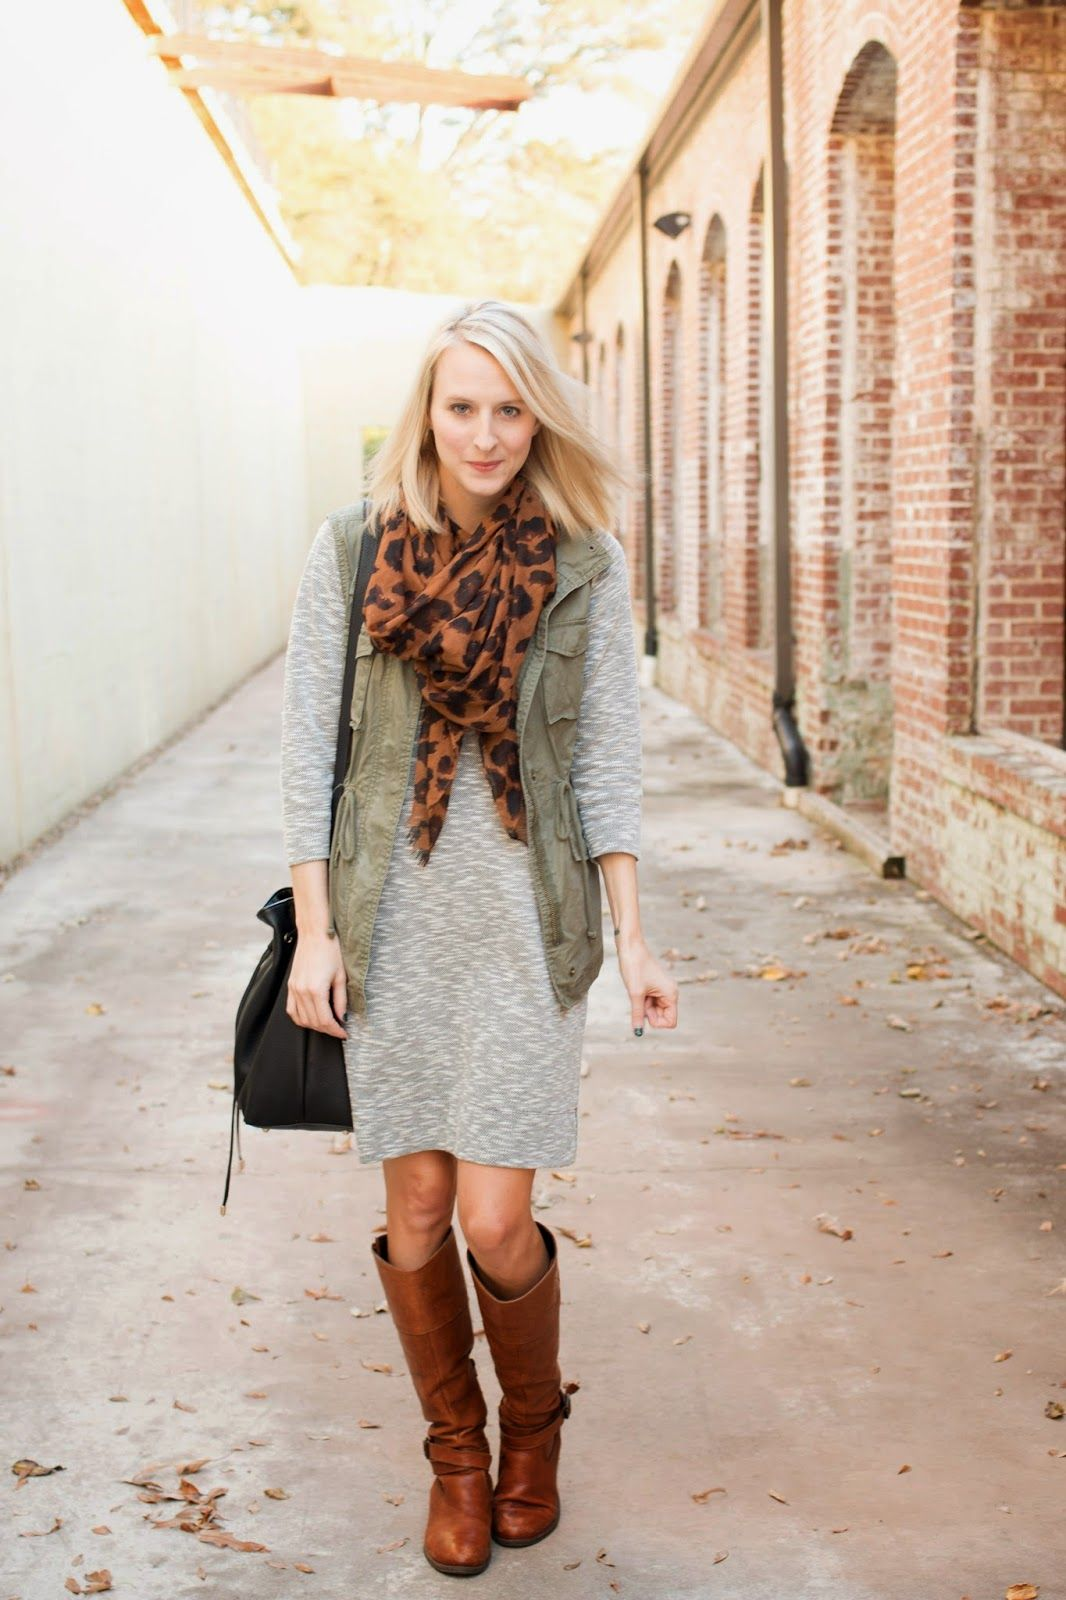 Gray dress olive vest leopard scarf brown boots. | Personal Style Inspiration | Pinterest ...